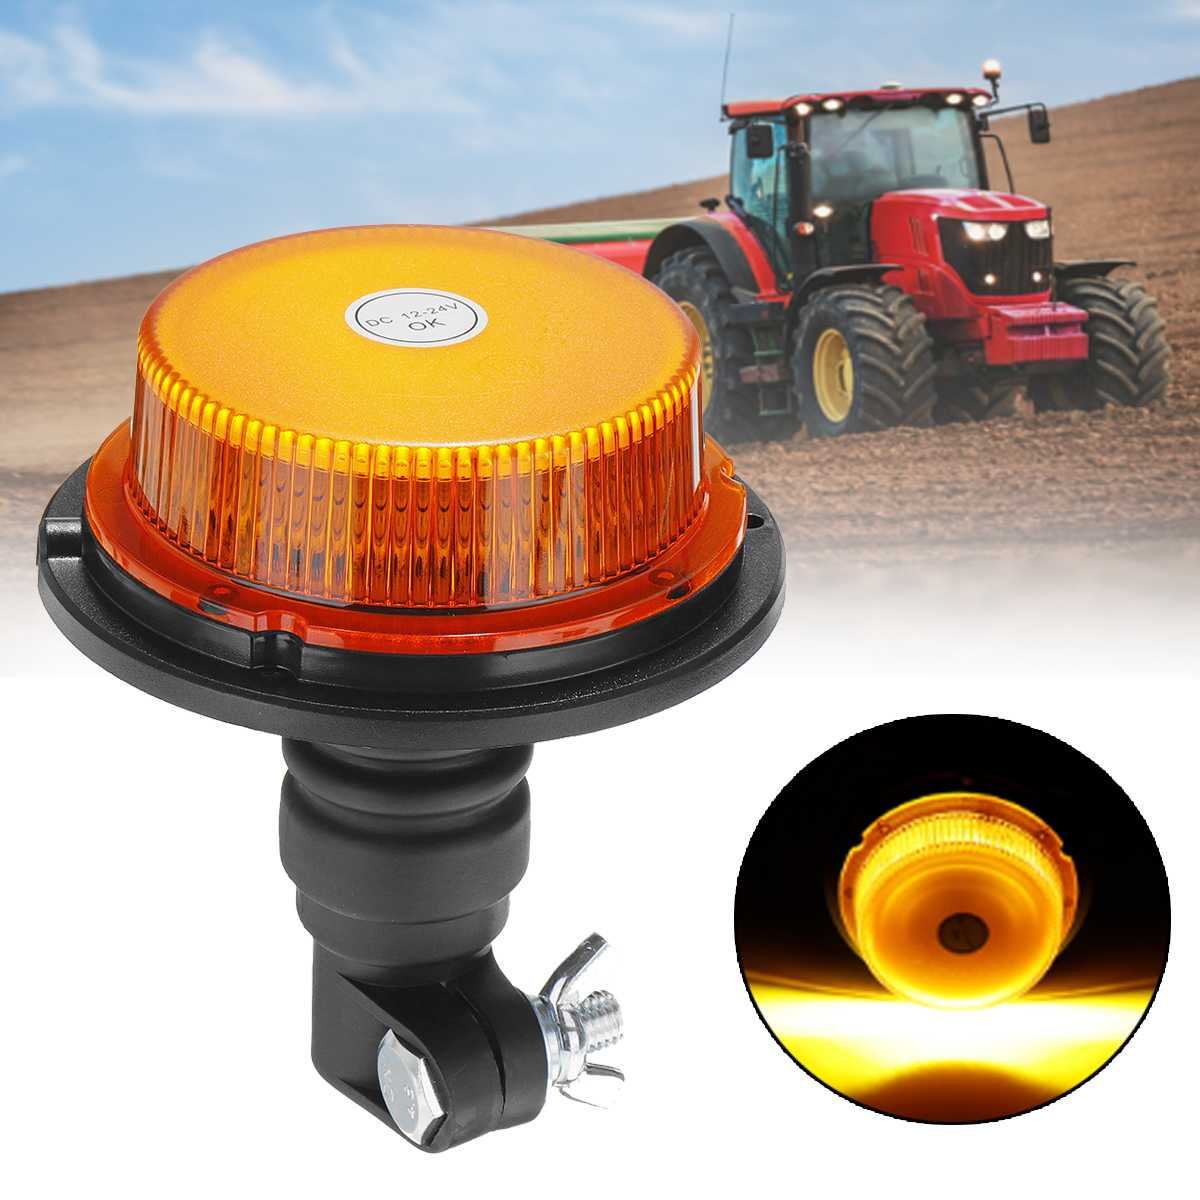 New 12-24V Car Truck Strobe Warning Signal Light 18 LED Flashing Emergency Lights Beacon Lamp For Agricultural Vehicle Tractor